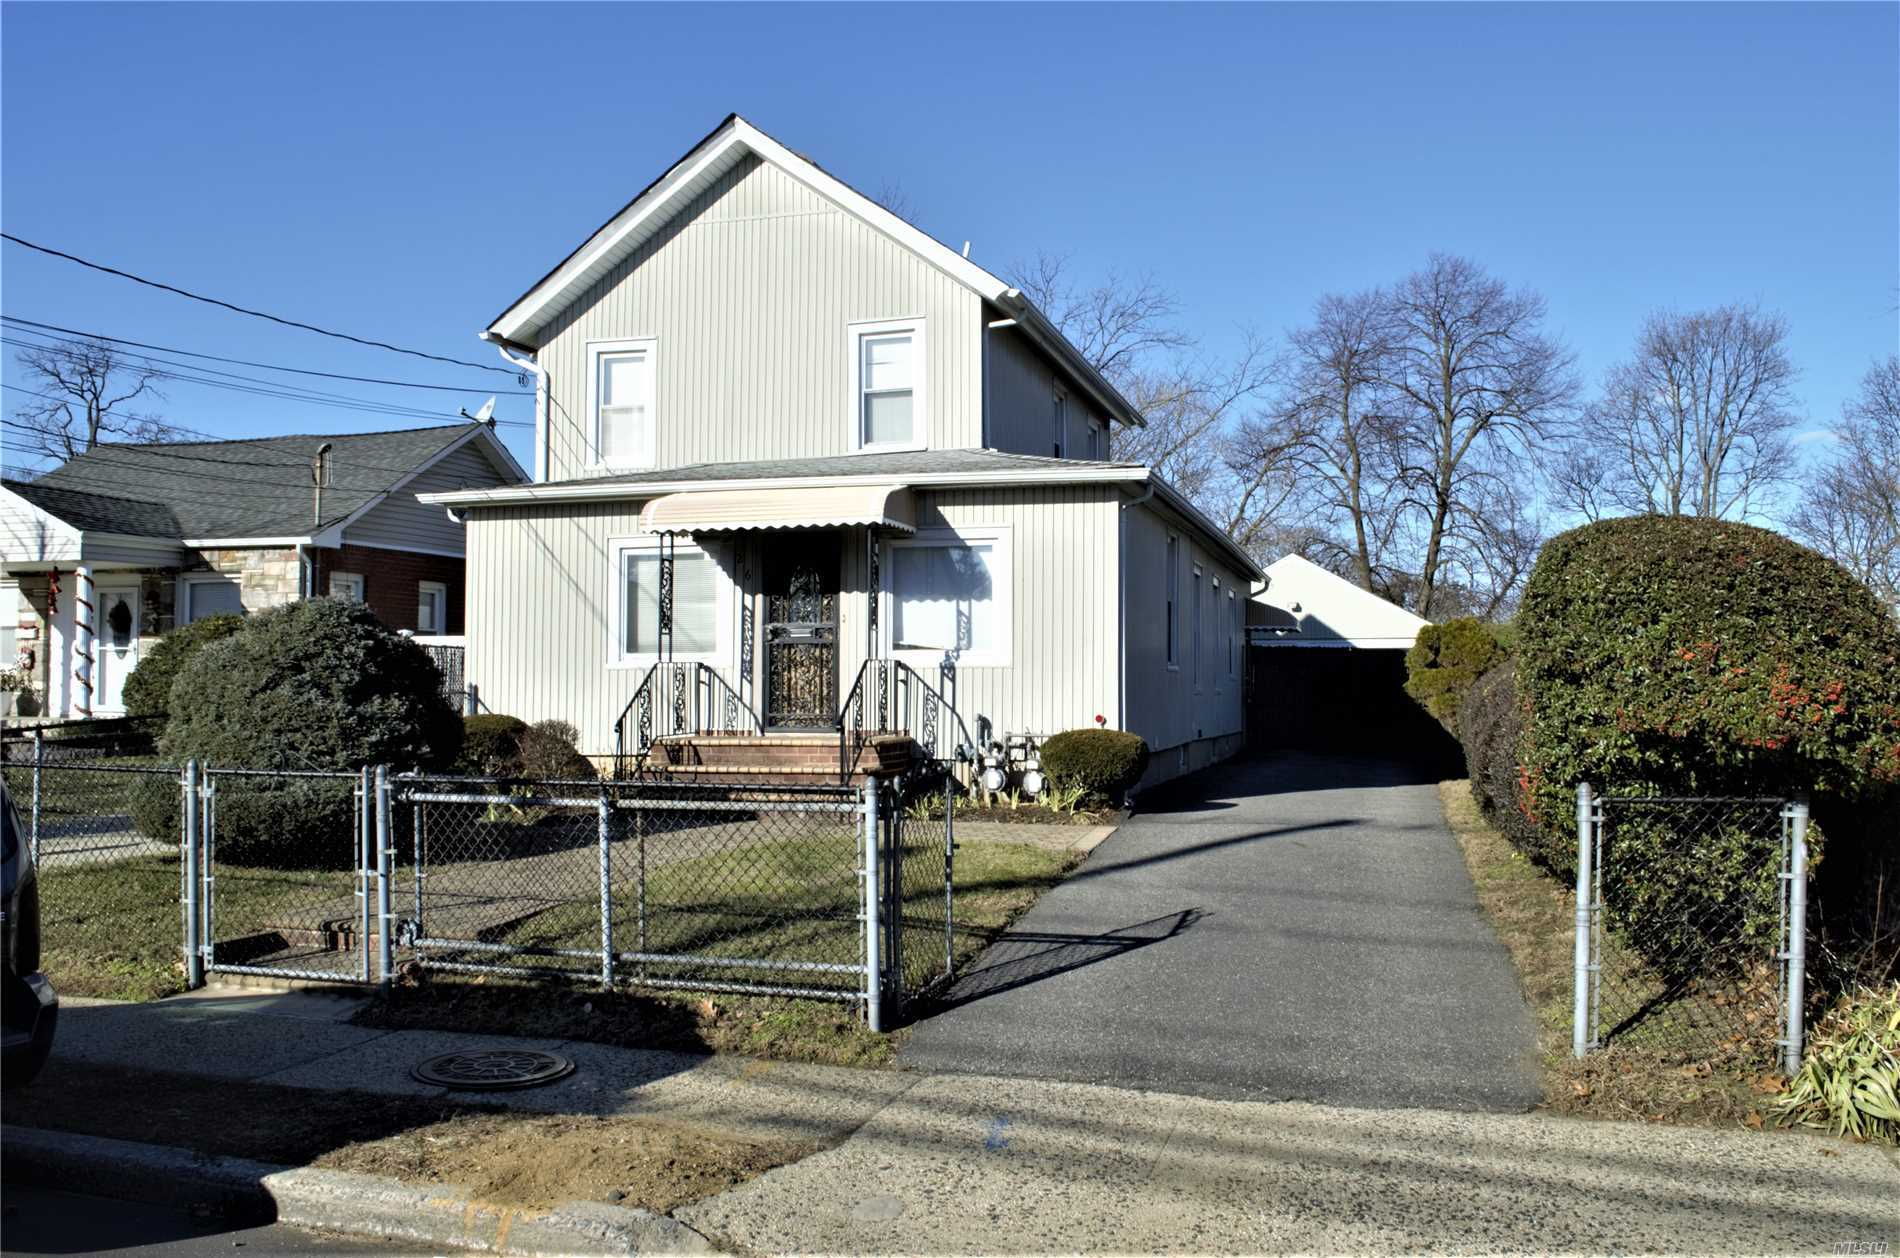 Legal 2 Family House. Large 187 Ft. Deep Lot. 2 Bedrooms Down. One Up. Second Floor Has A Large Deck Of The Bedroom W/Skylight. Full Finished Basement. Large 2 Car Garage. 2 Private Driveways. Great Location. Lot Size 50X187. Low Taxes. Close To Schools And Transportation.